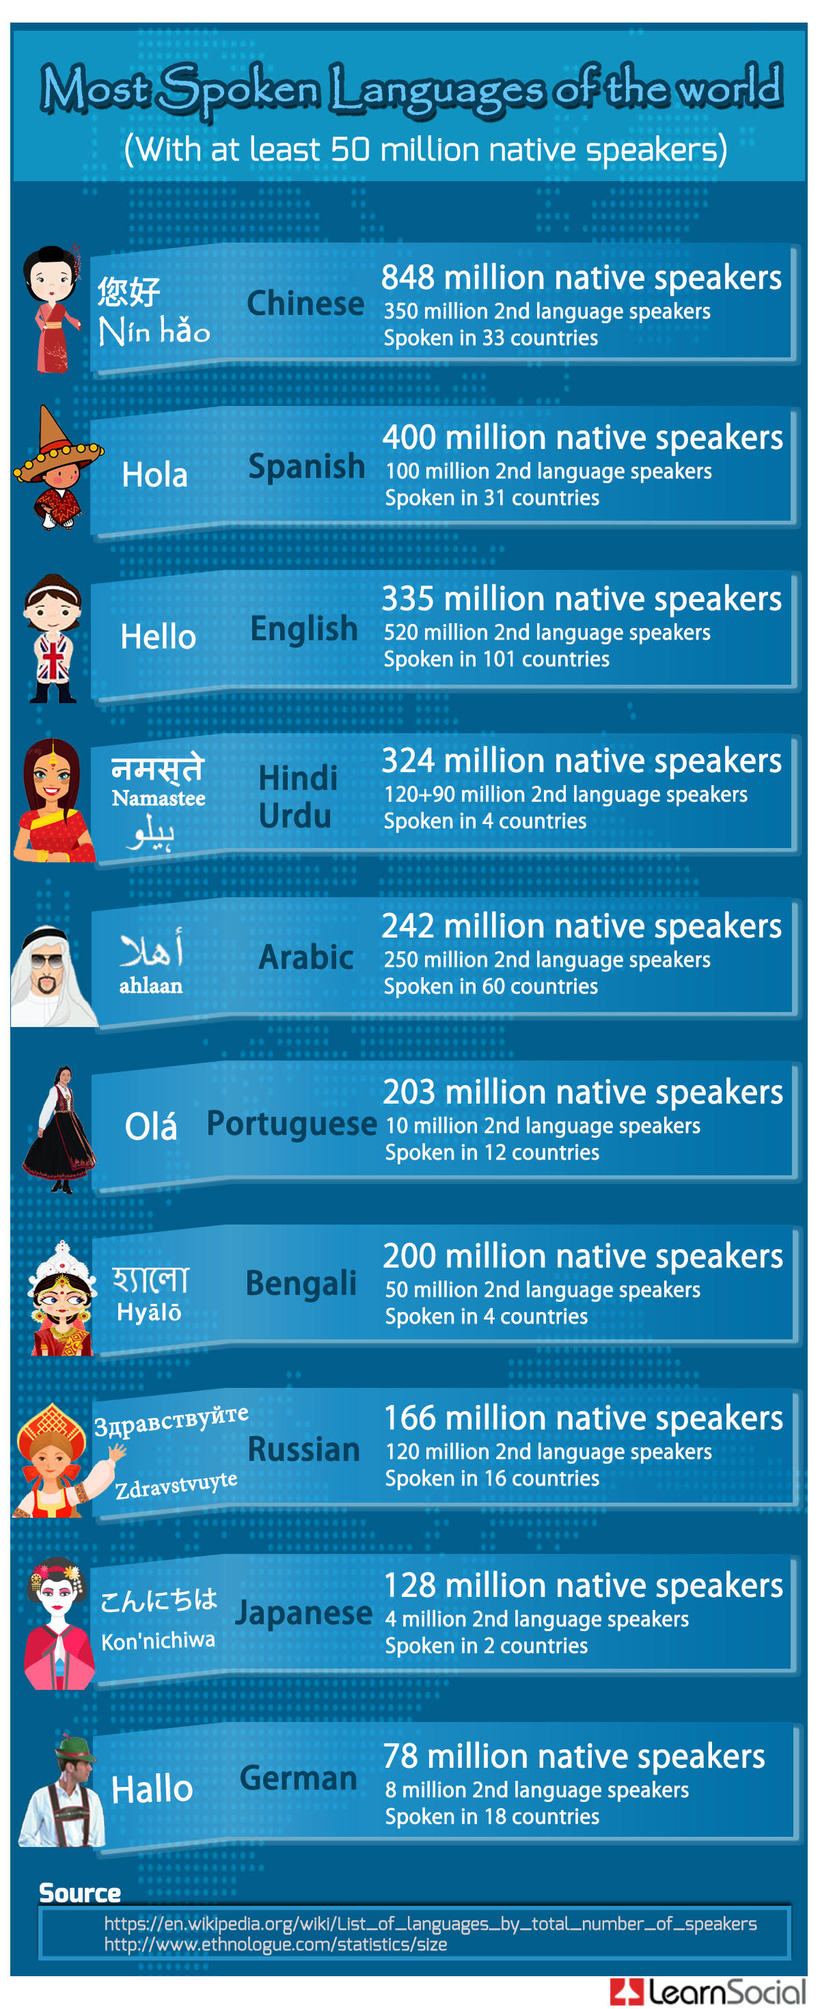 Top 10 Spoken Languages of the World - e-Learning Feeds